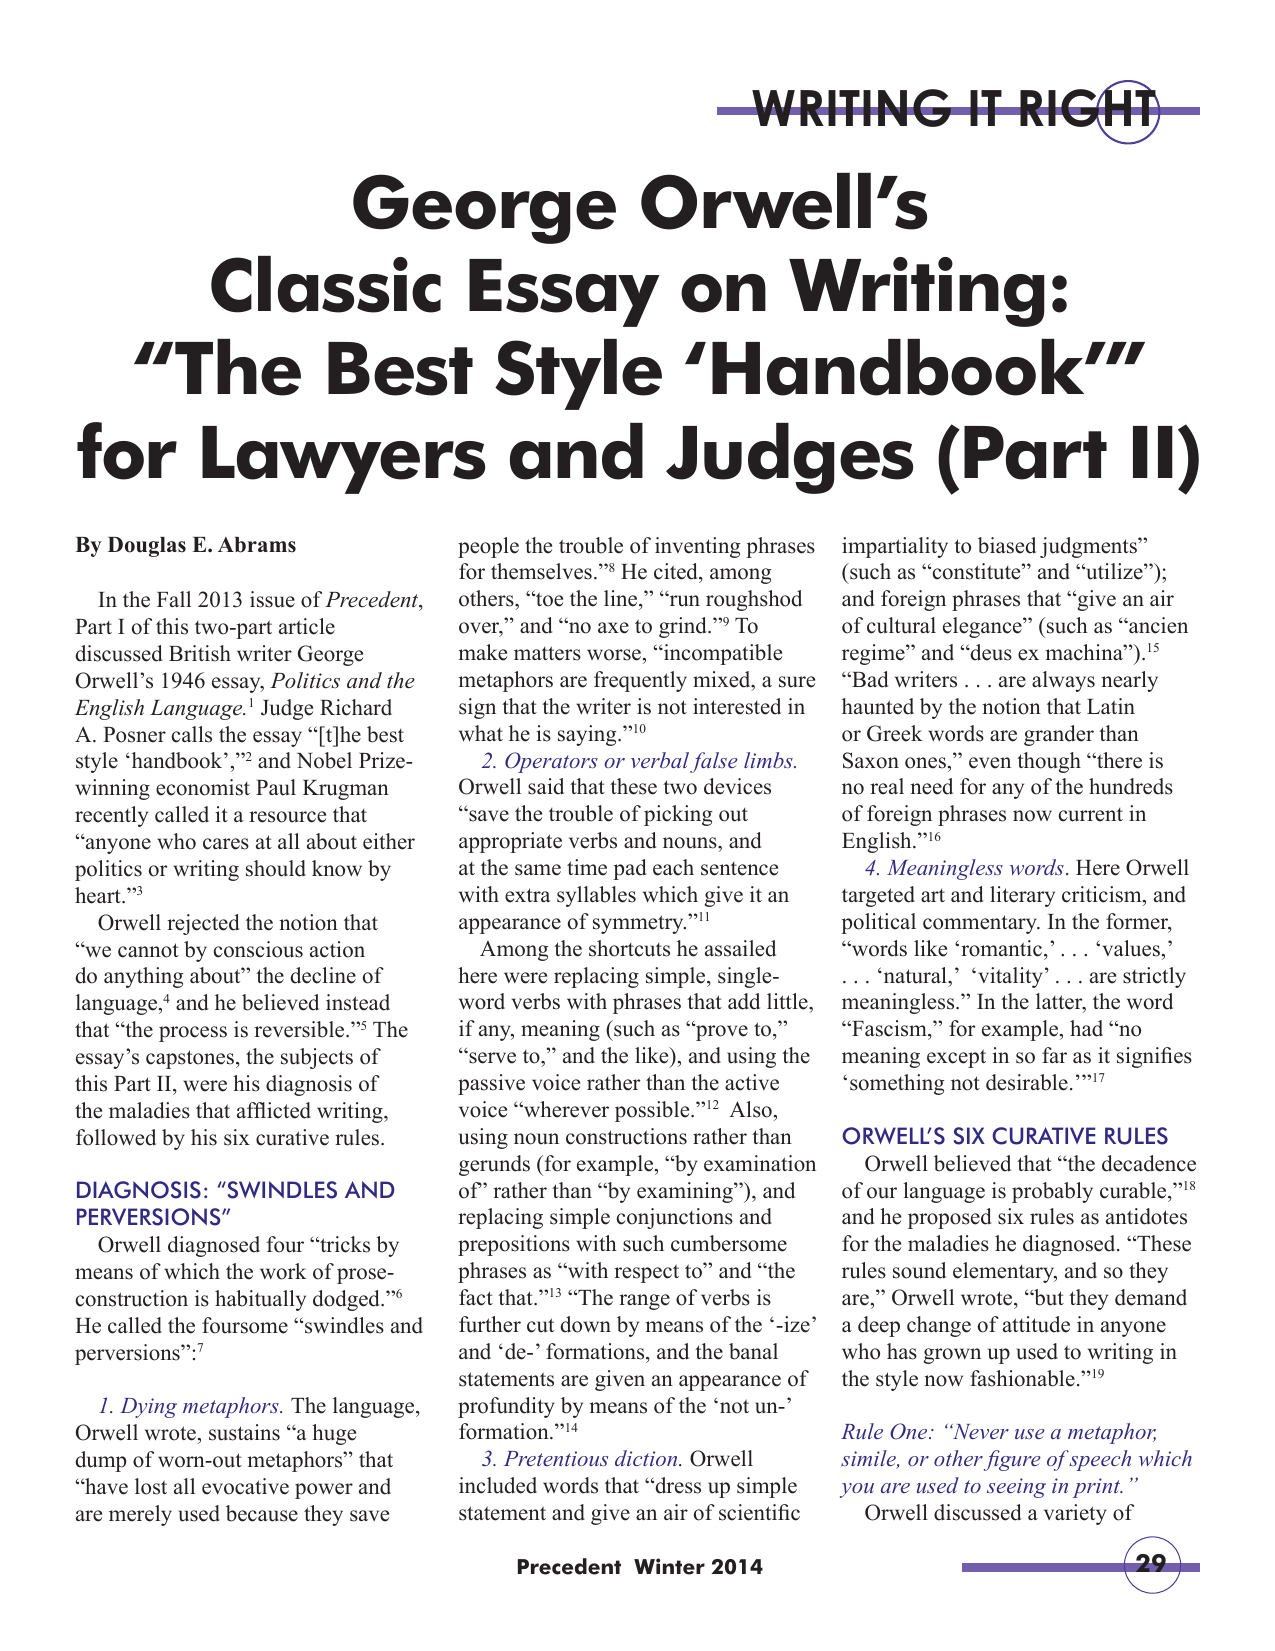 George Orwells Classic Essay On Writing The Best  Thesis Examples For Essays also Teaching Essay Writing To High School Students  Essay On Health And Fitness